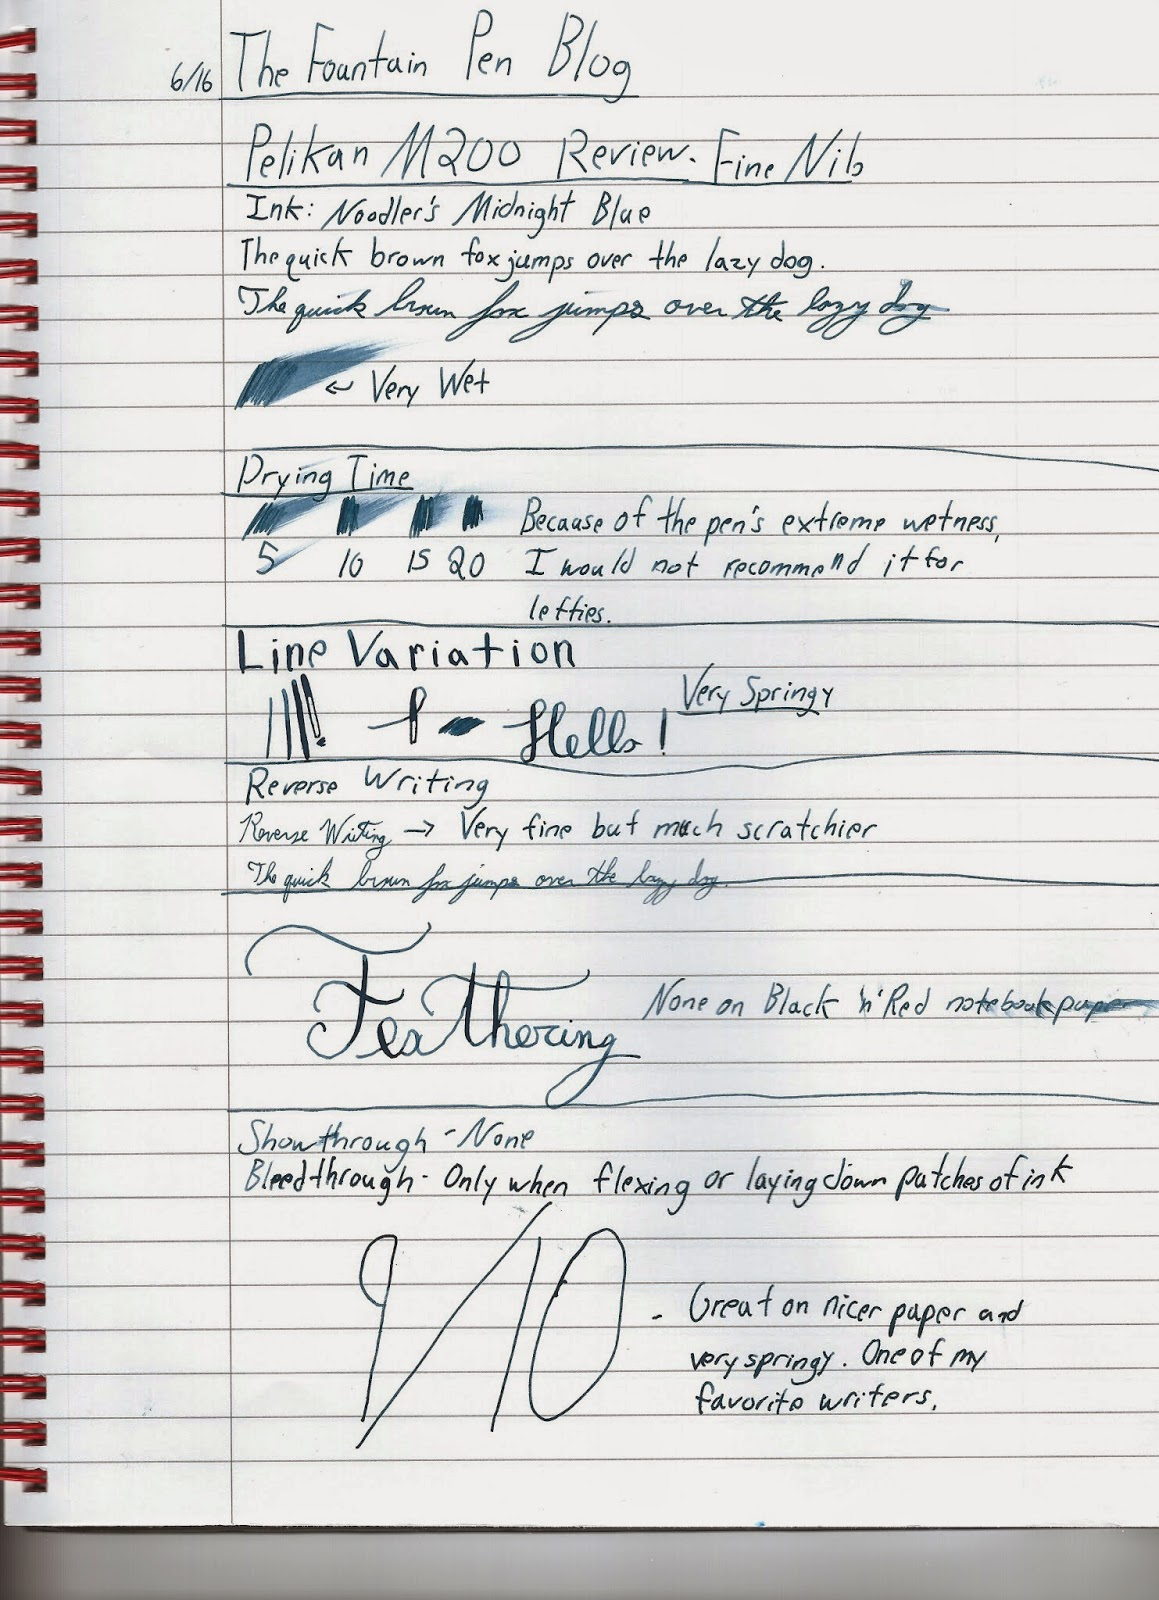 Pelikan M200 Writing Sample with Noodler's Midnight Blue